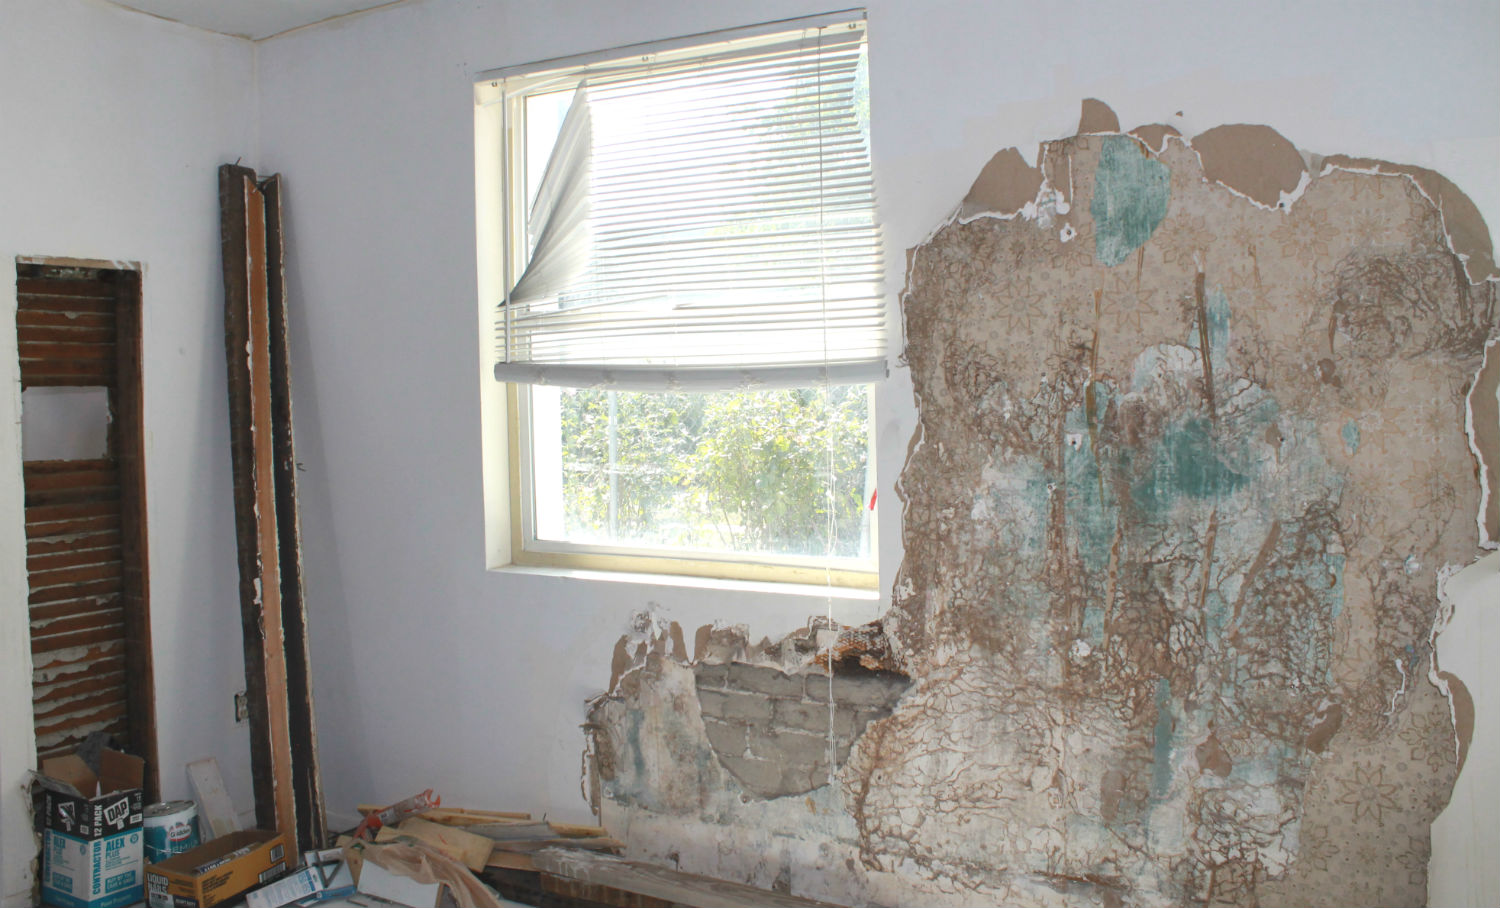 Muskegon Rental Property Being Restored After Mold Remediation Services